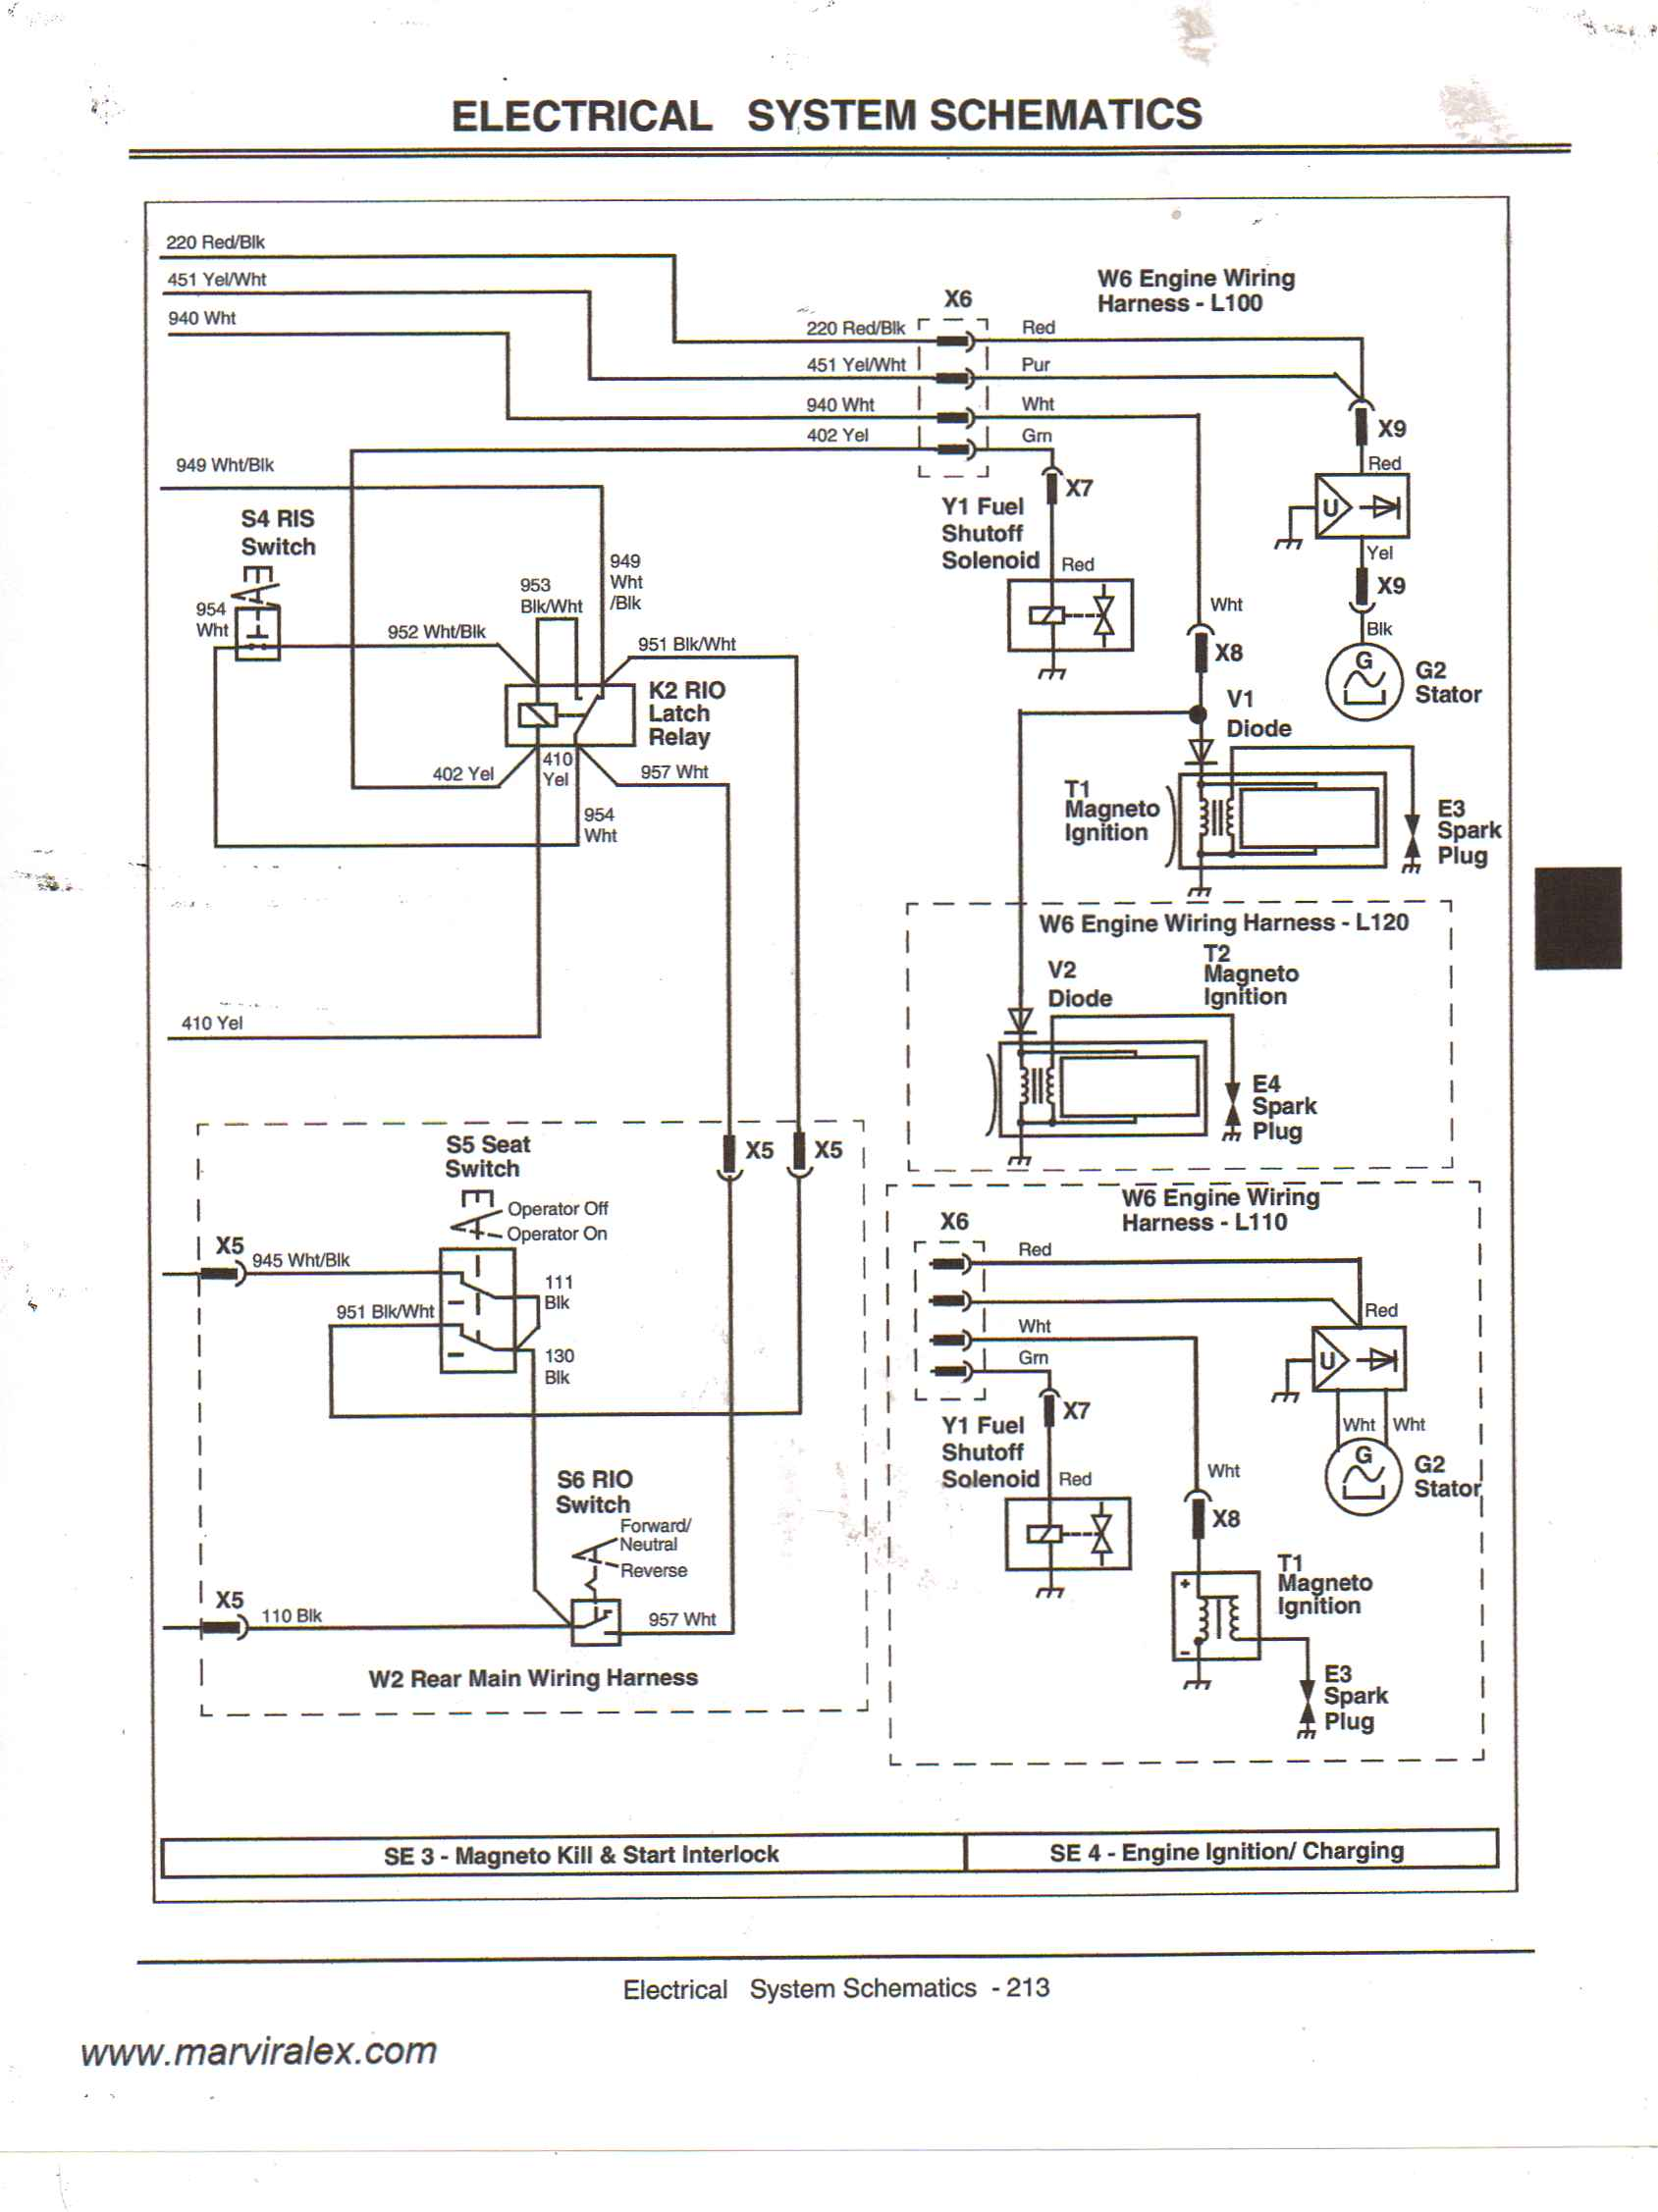 John Deere L100 Wiring Diagram on john deere wiring schematics